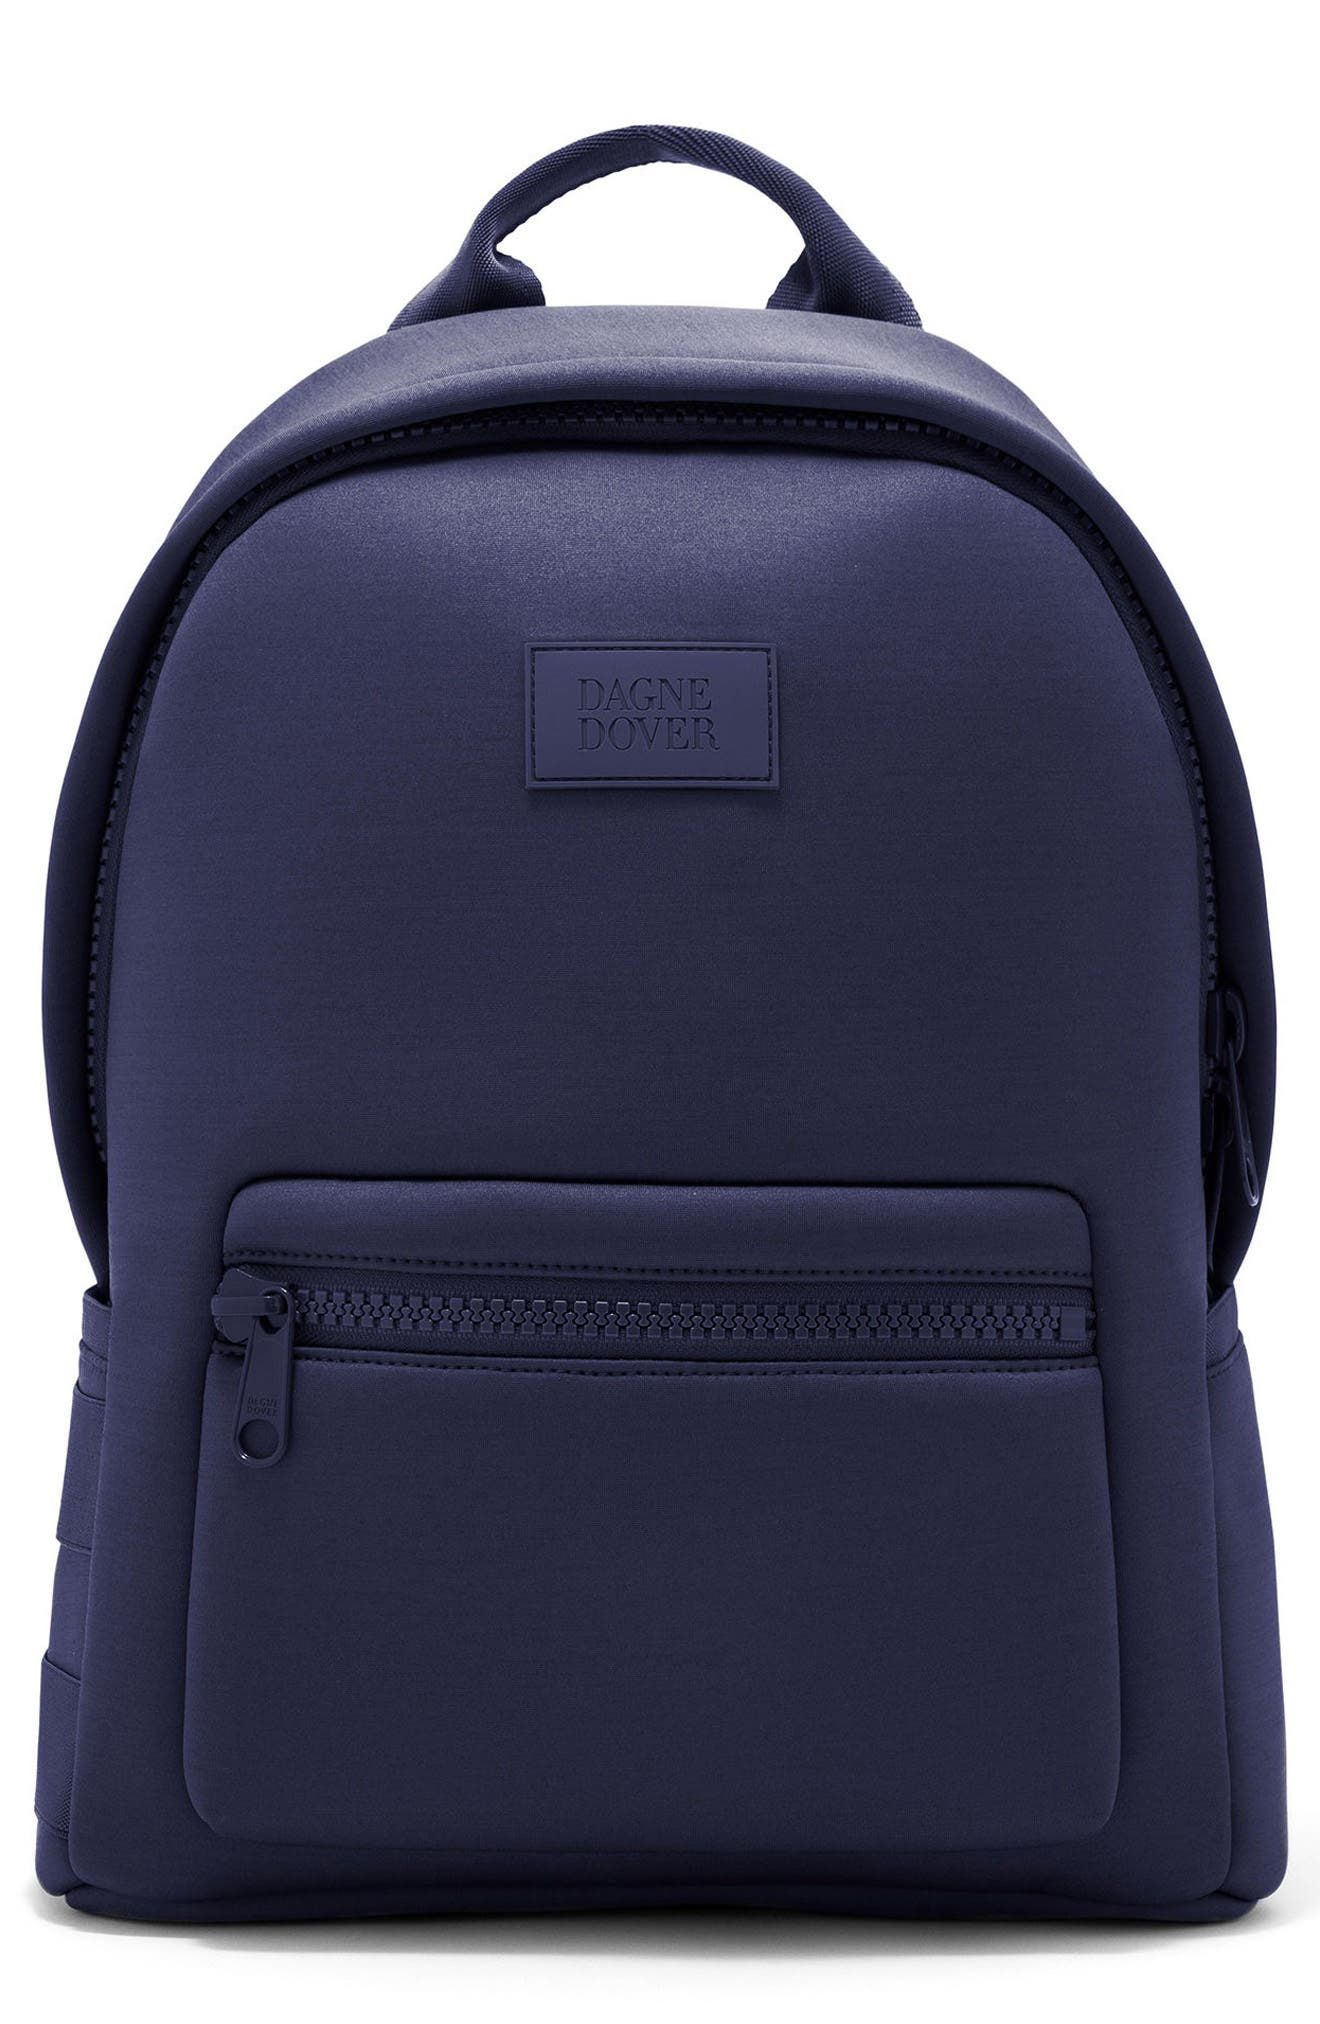 Dagne Dover Dakota Neoprene Backpack